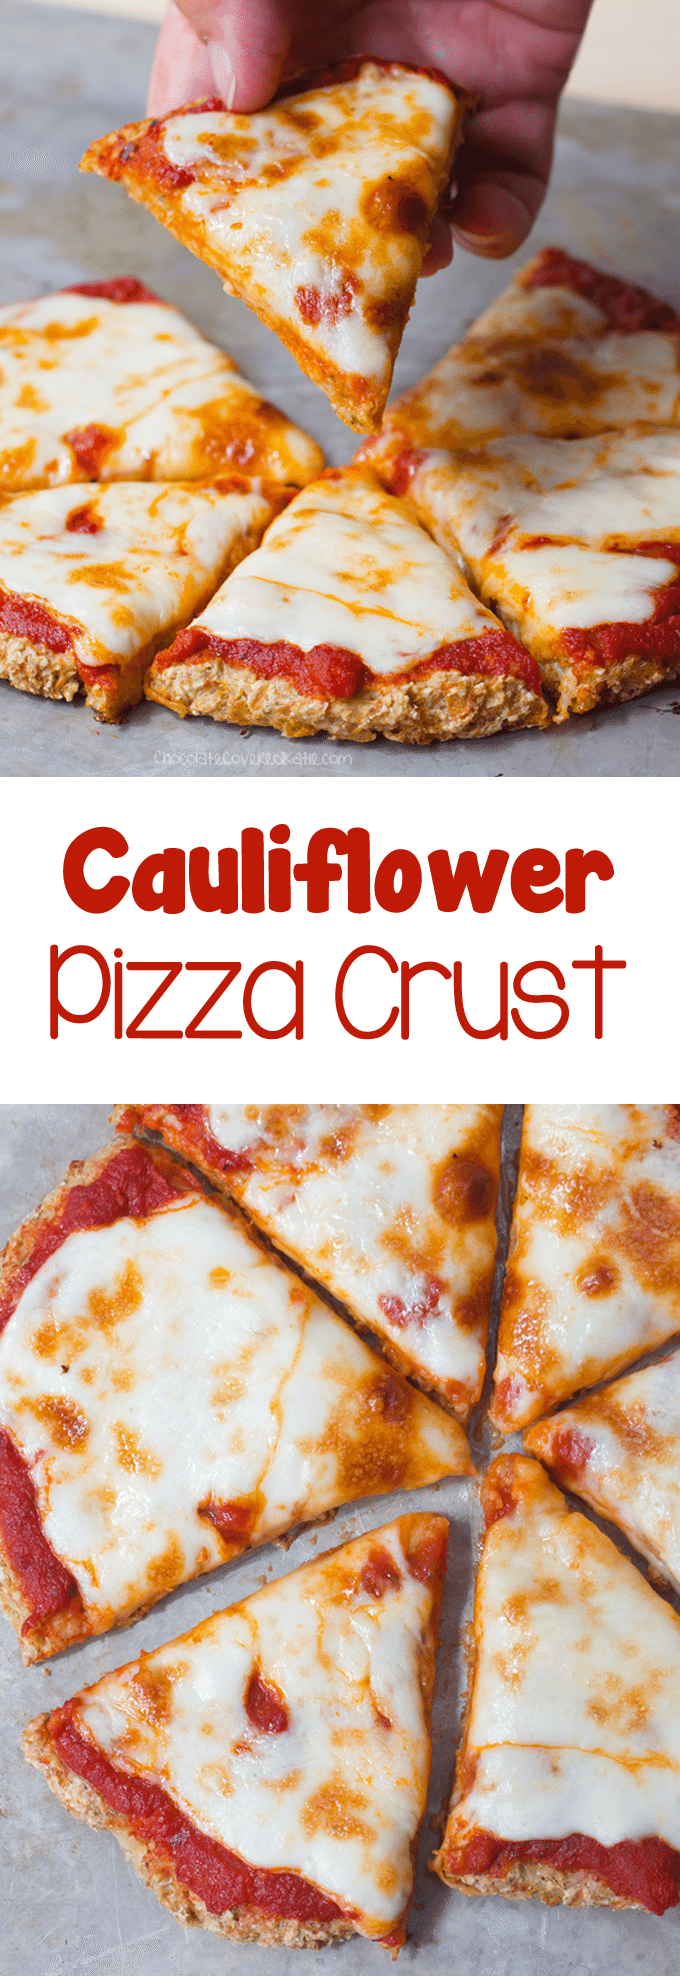 Vegan Cauliflower Pizza Crust Whole Foods